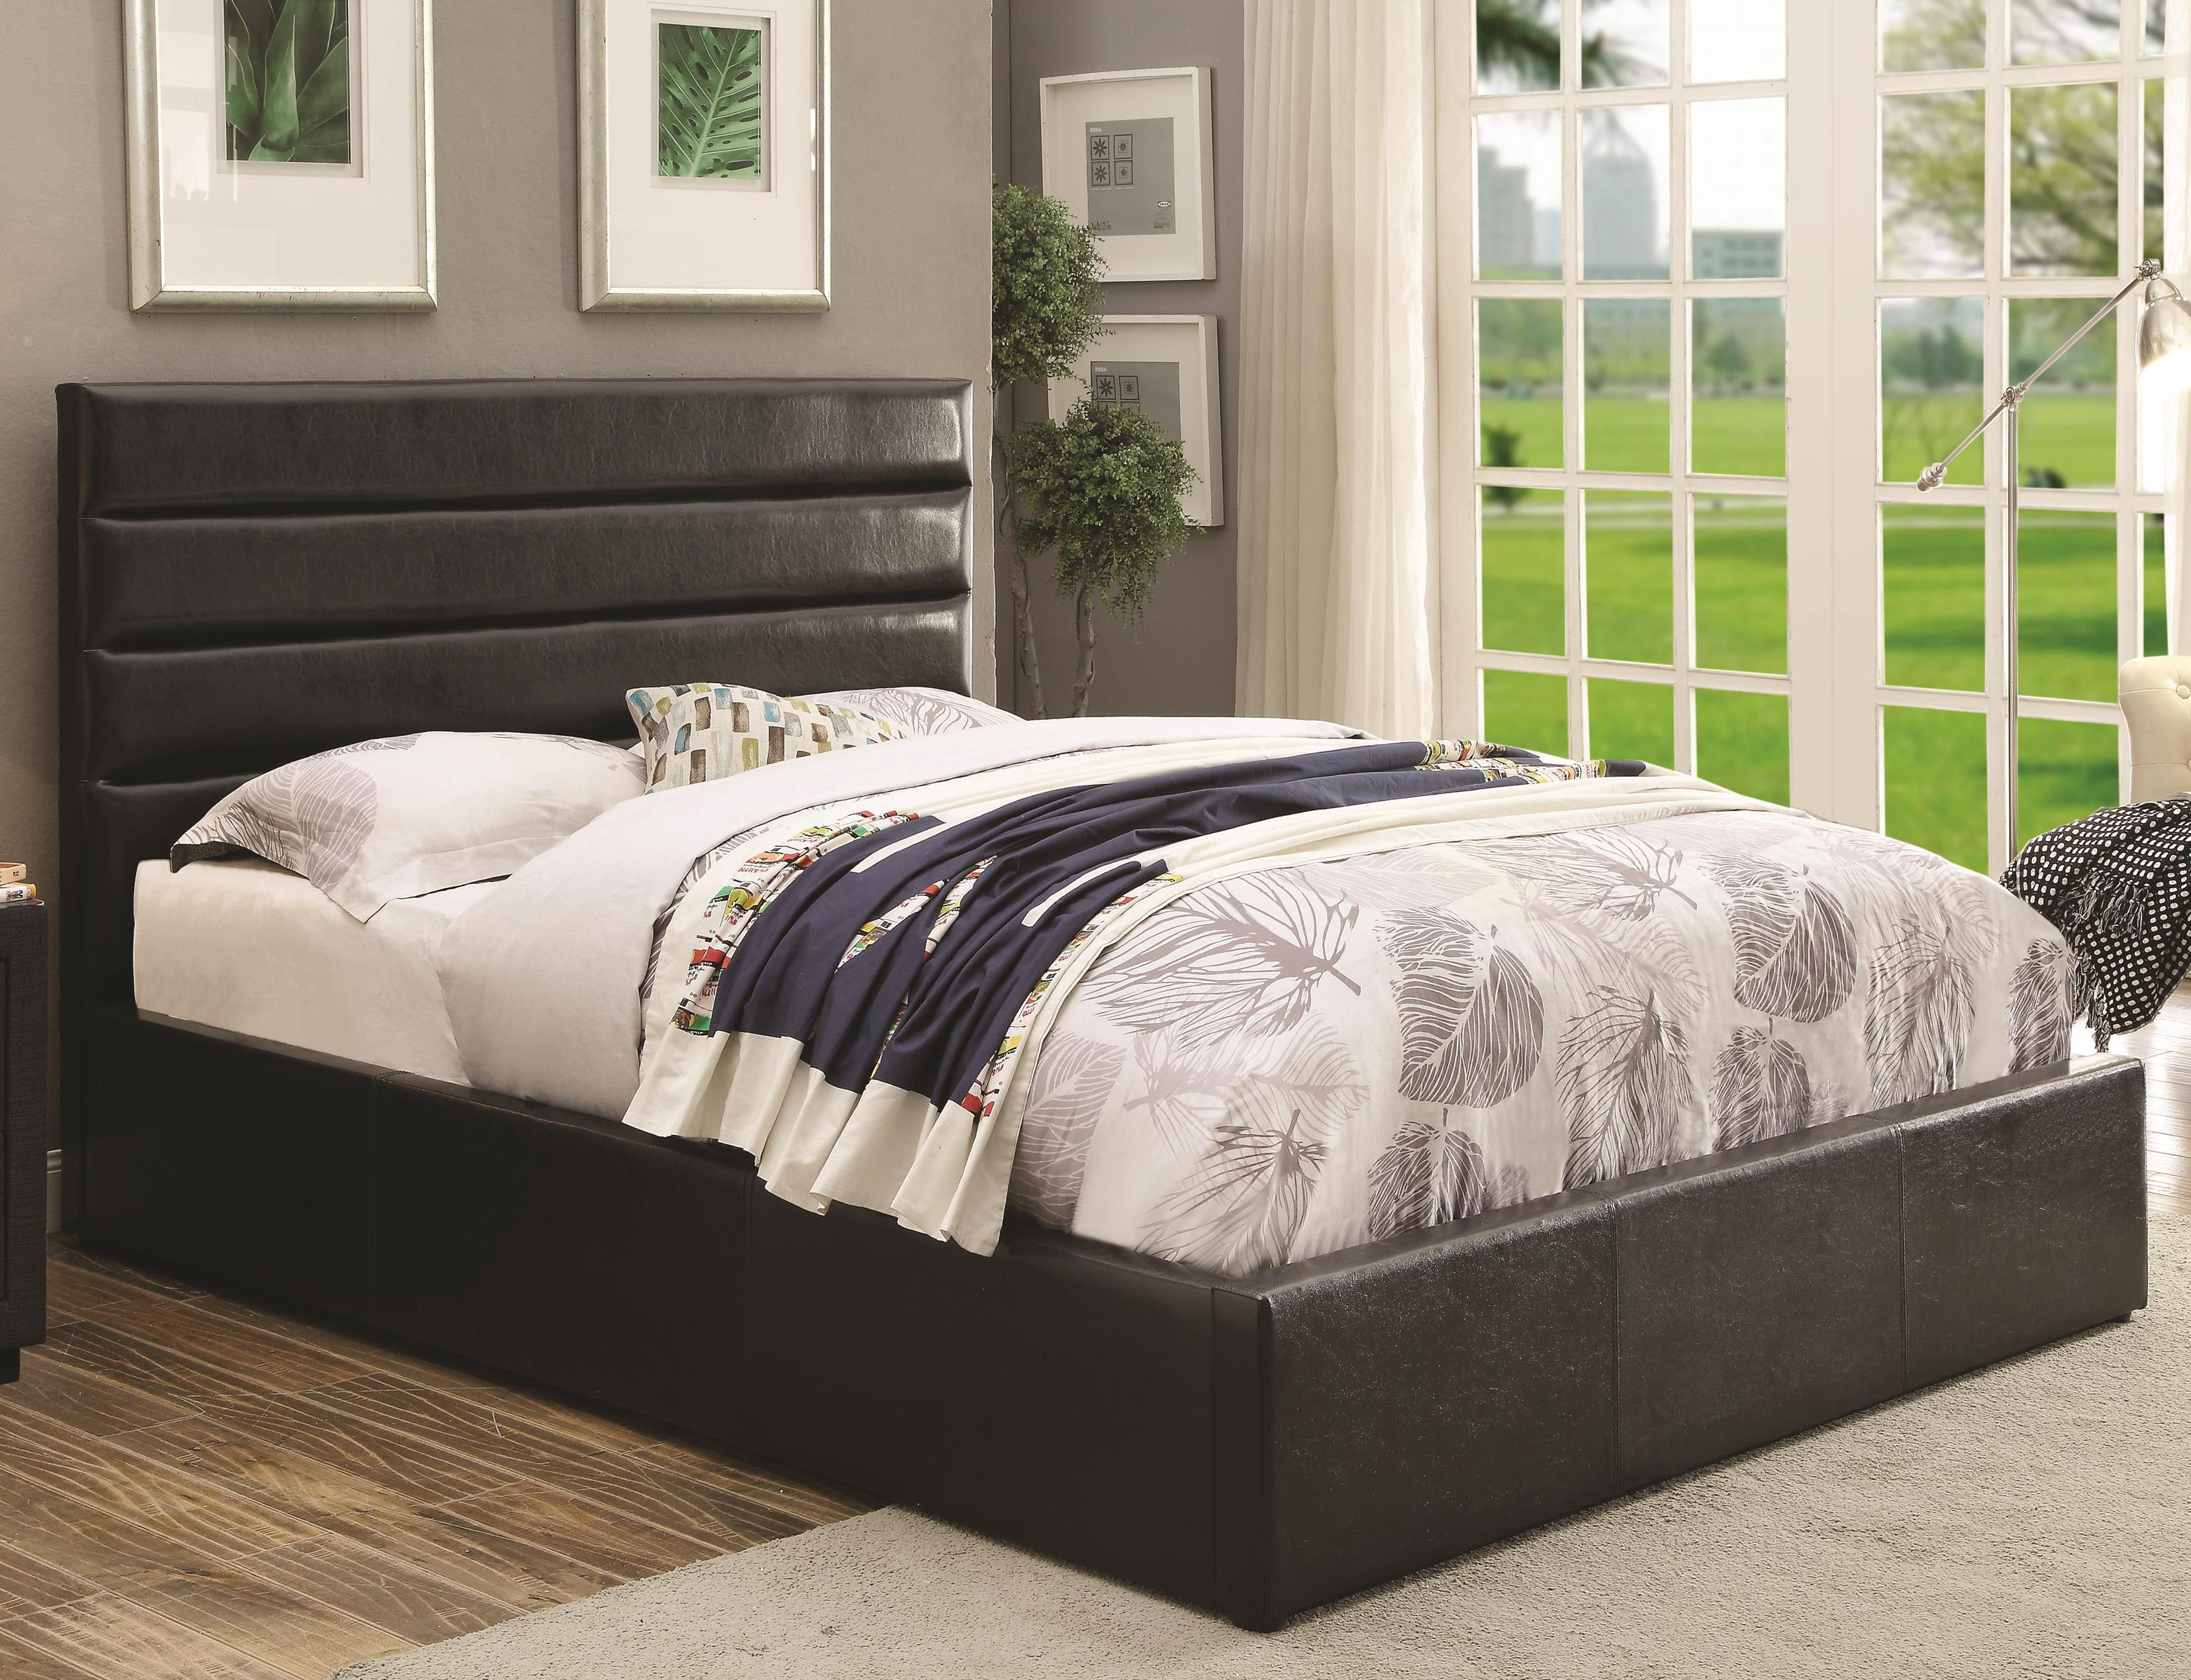 Riverbend King Bed by Coaster at Northeast Factory Direct